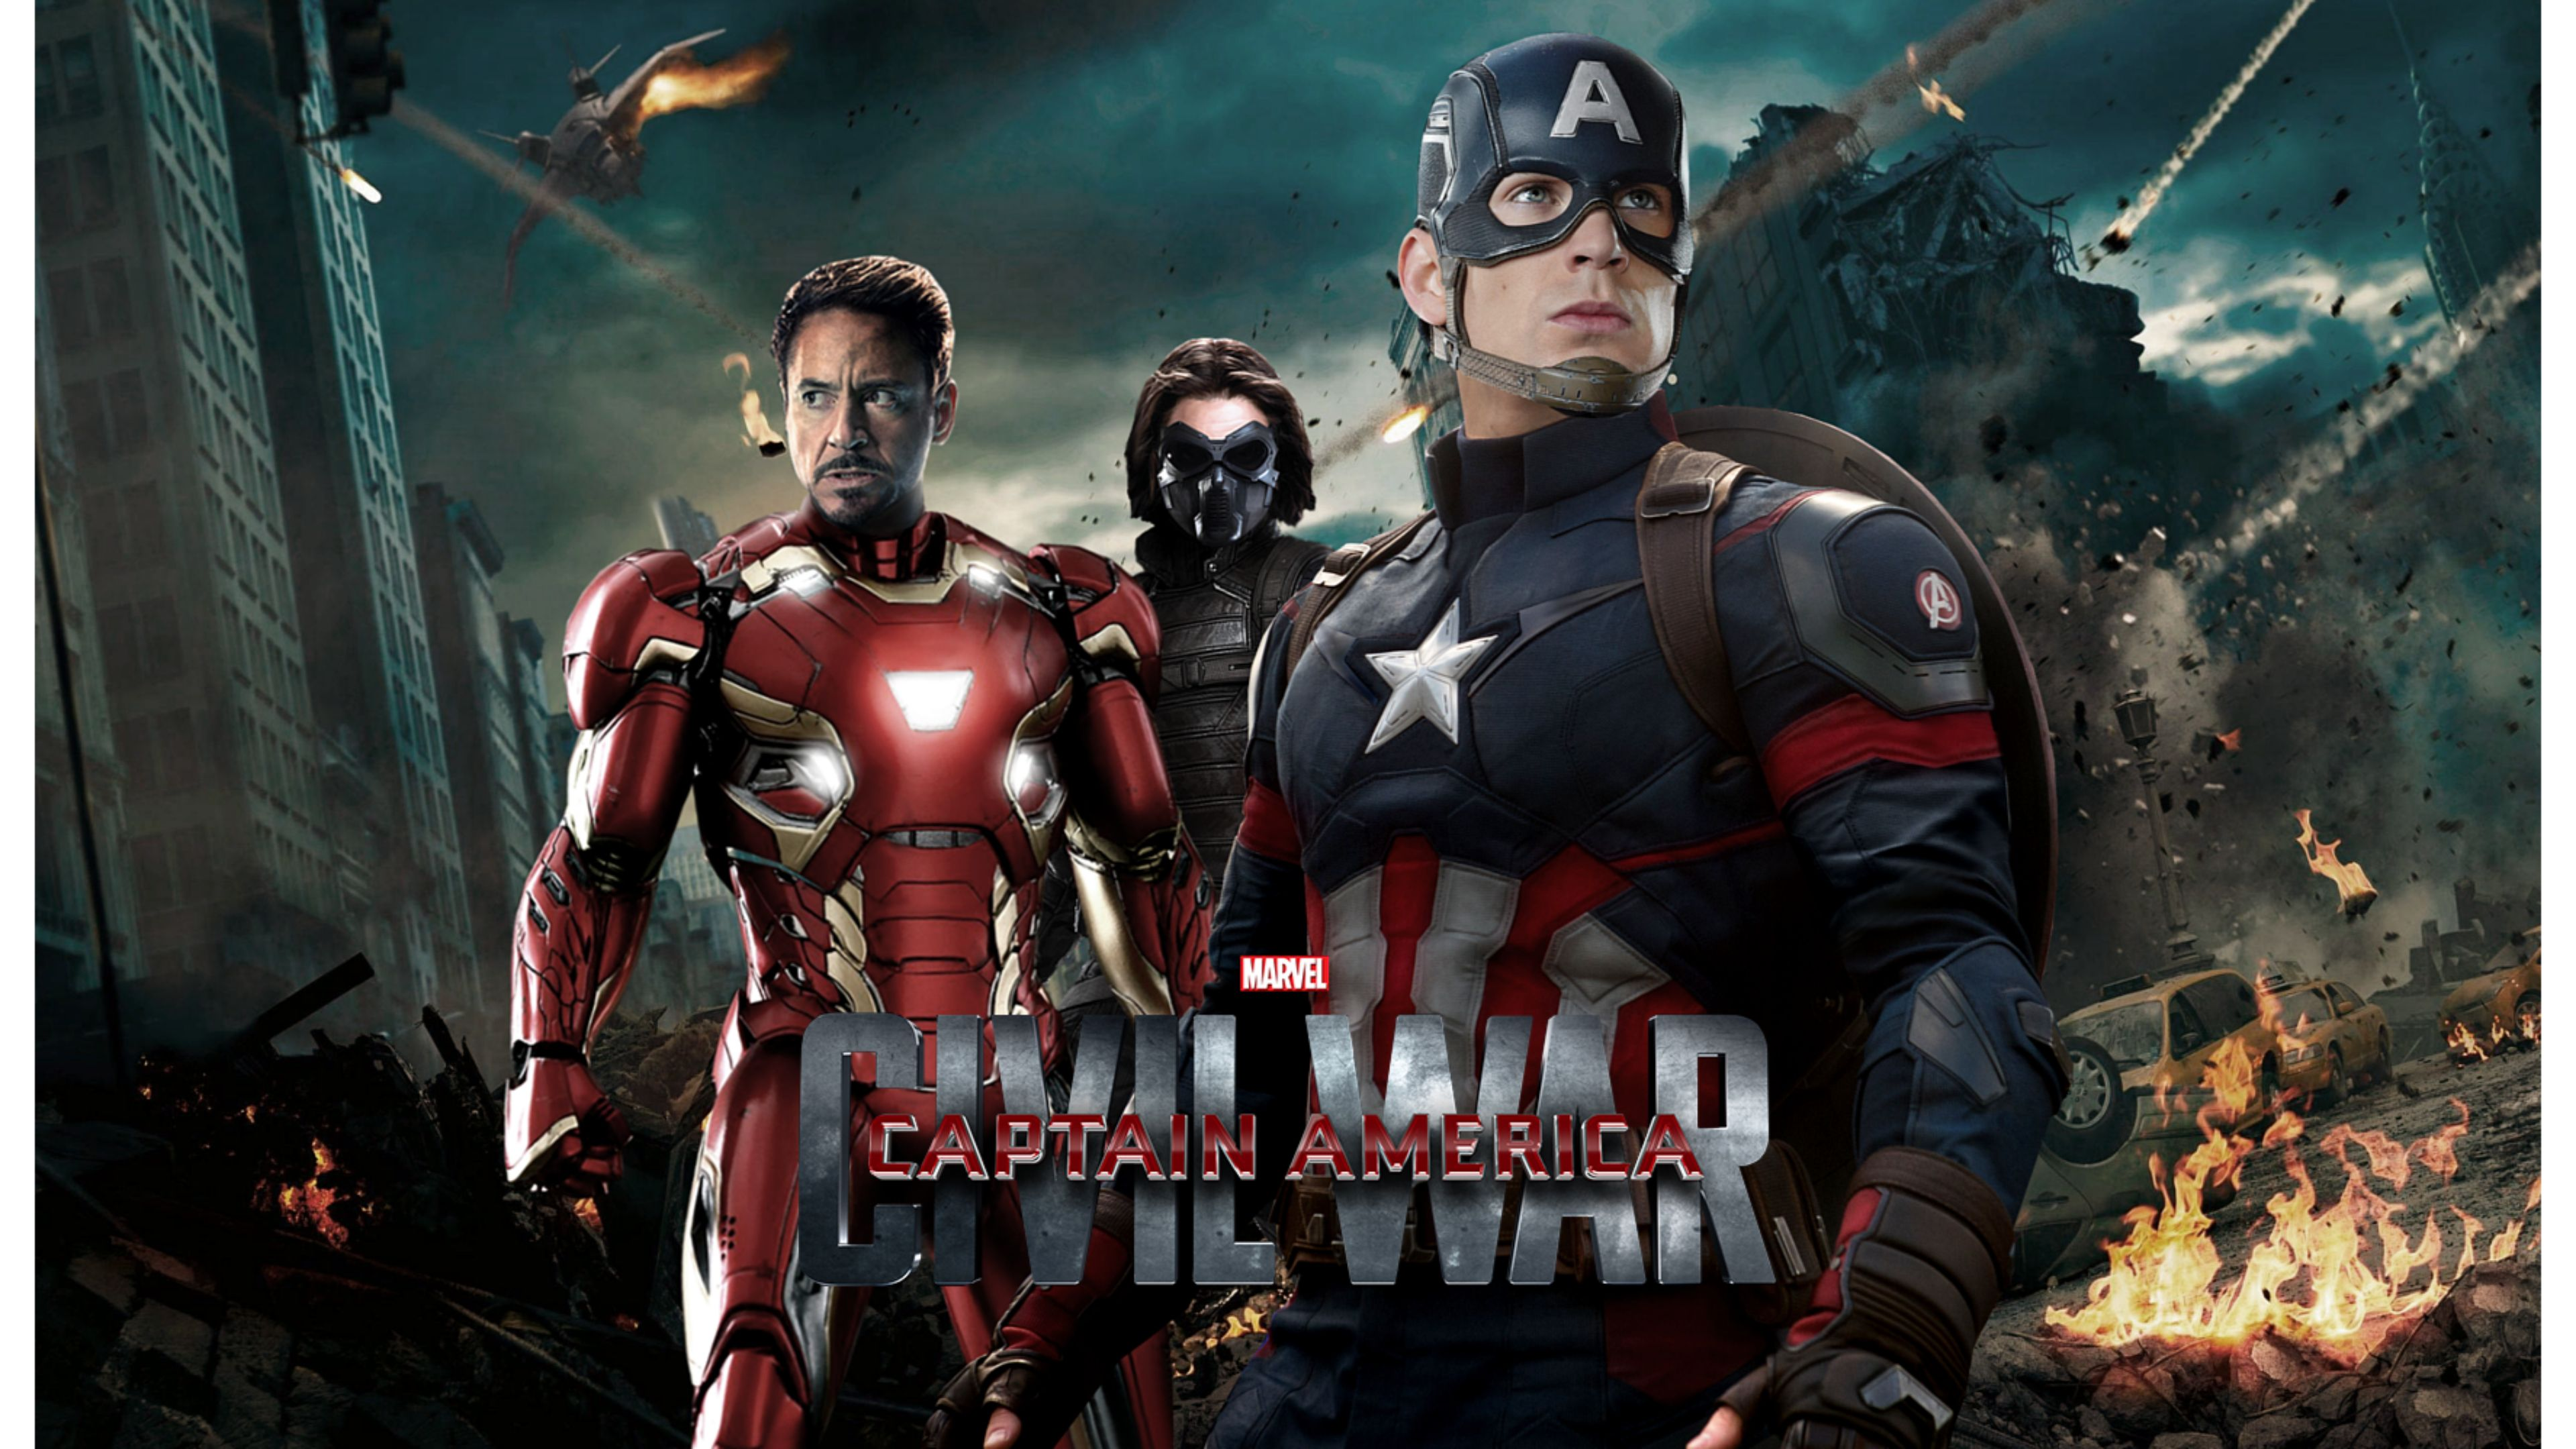 Captain America Civil War summary of box office results charts and release information and related links